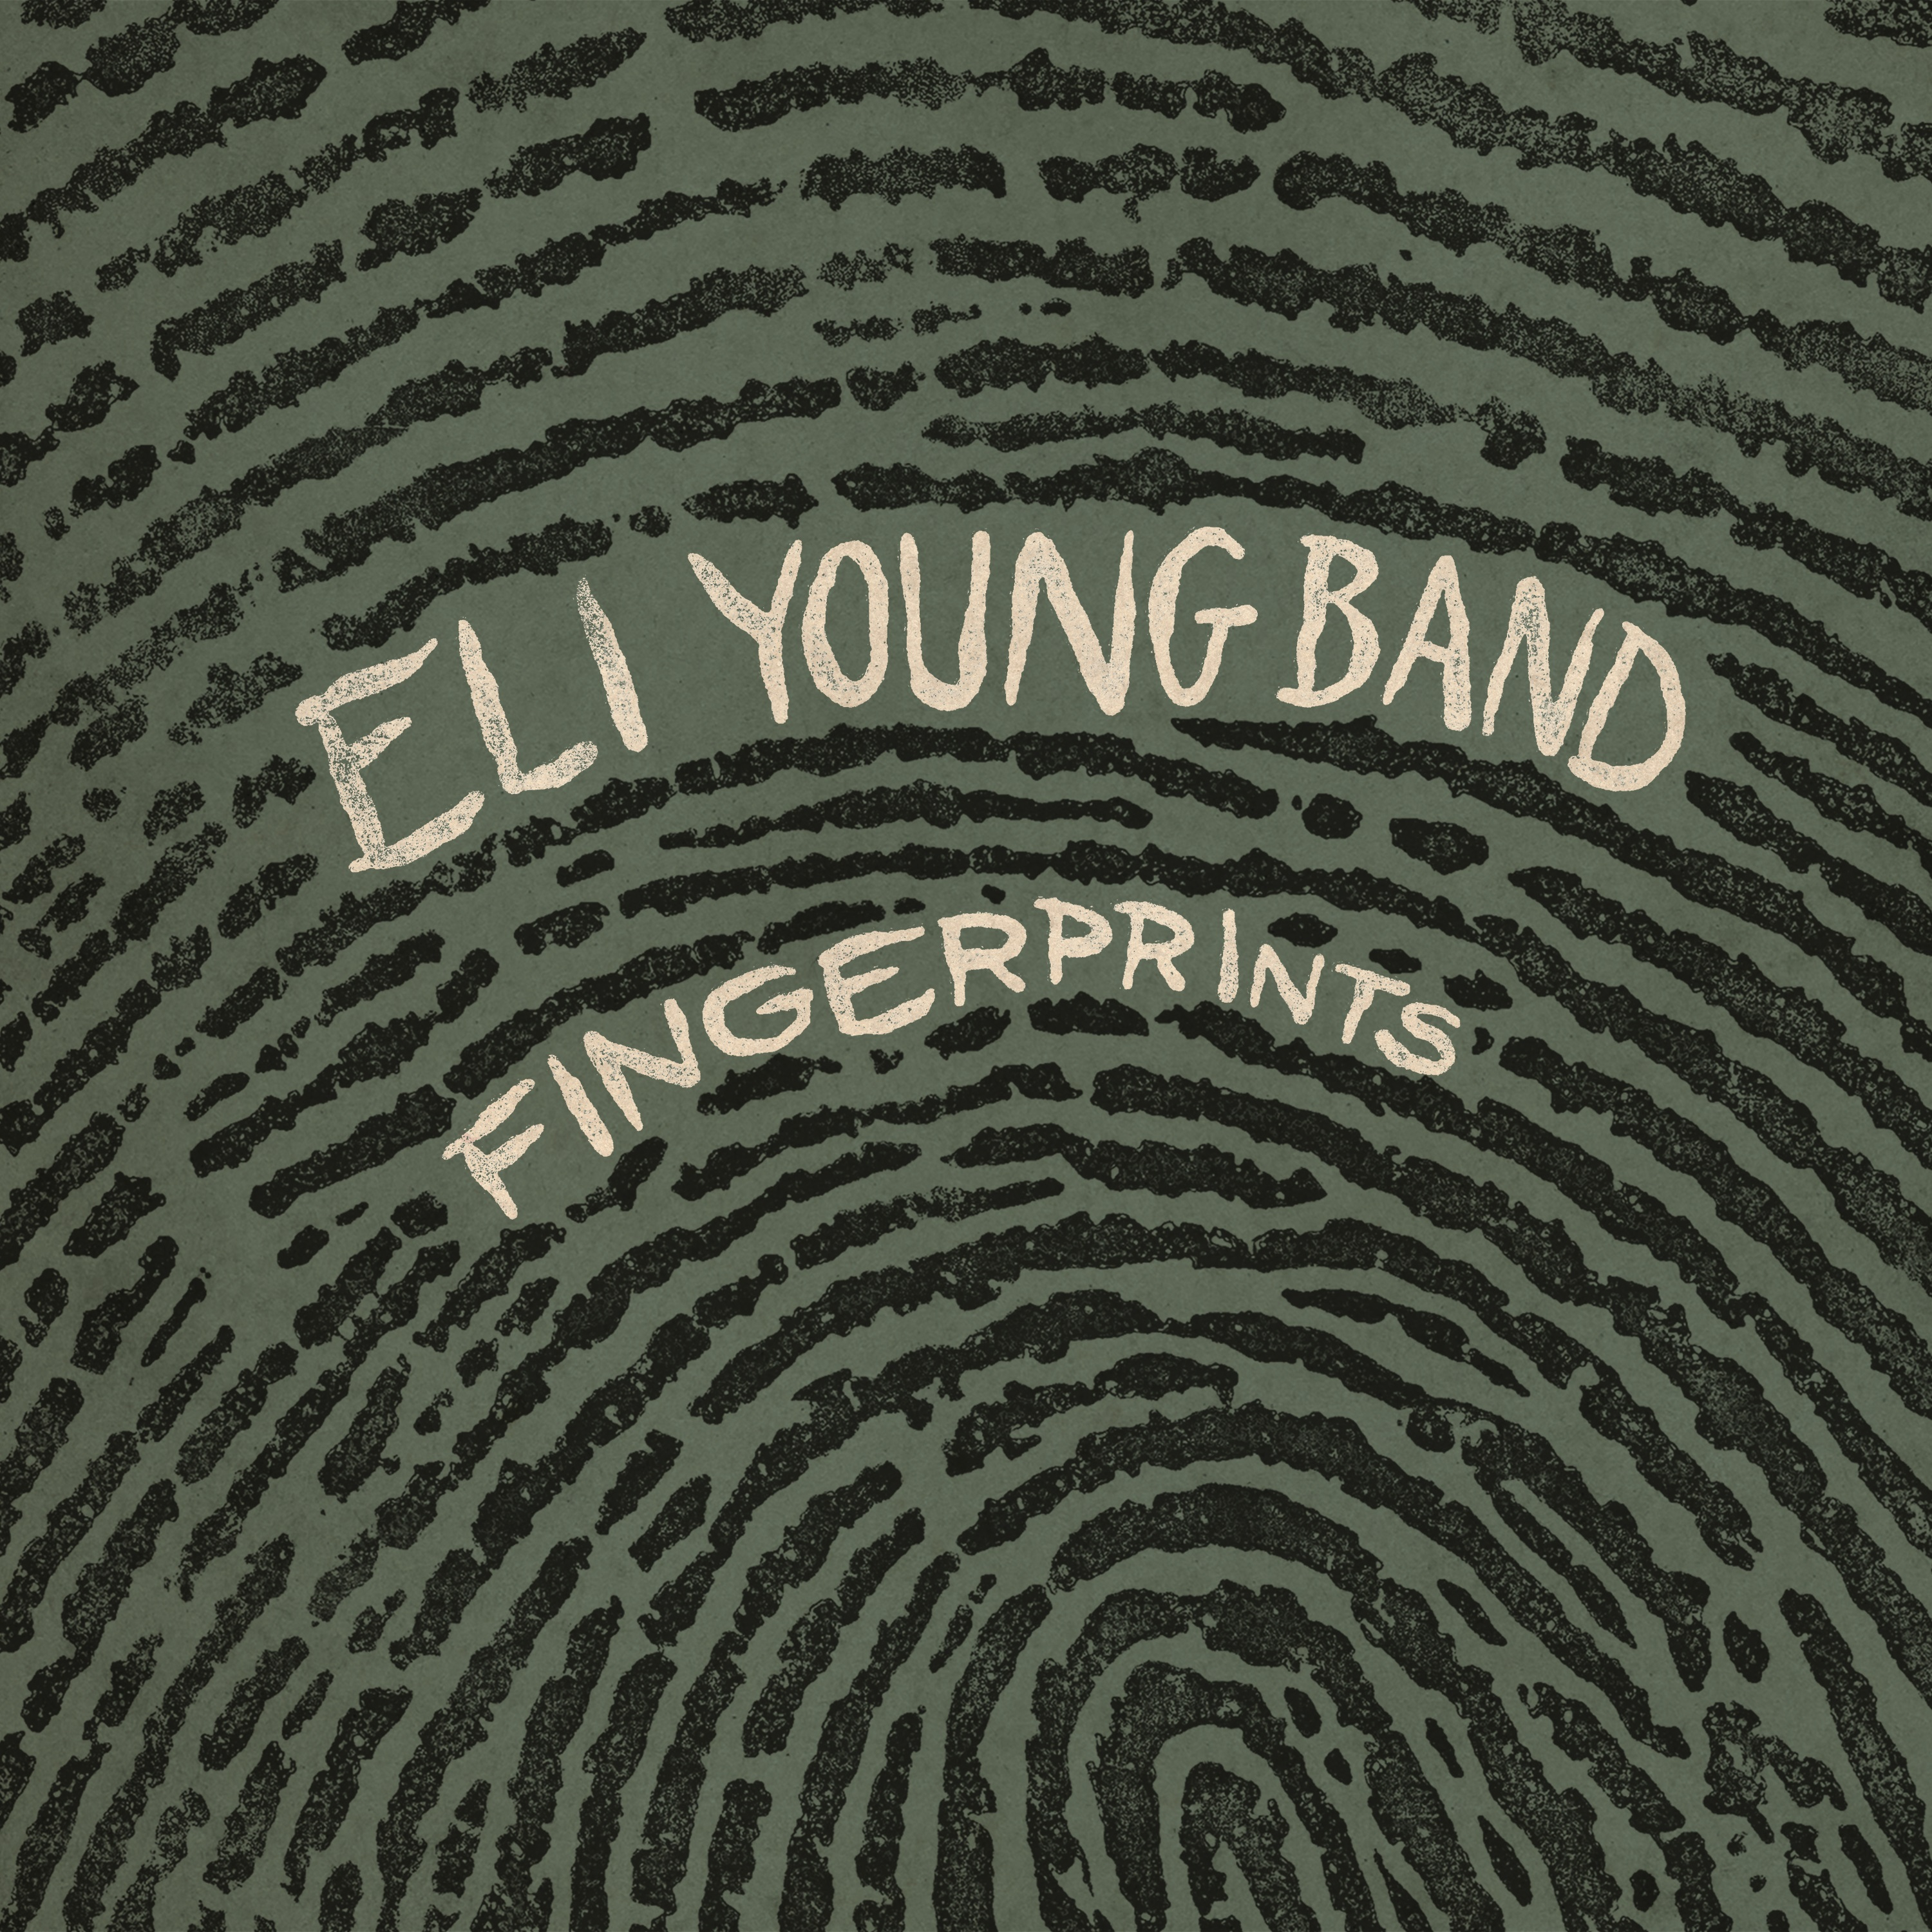 Eli Young Band Releases Summery, Radio-Ready 'Fingerprints